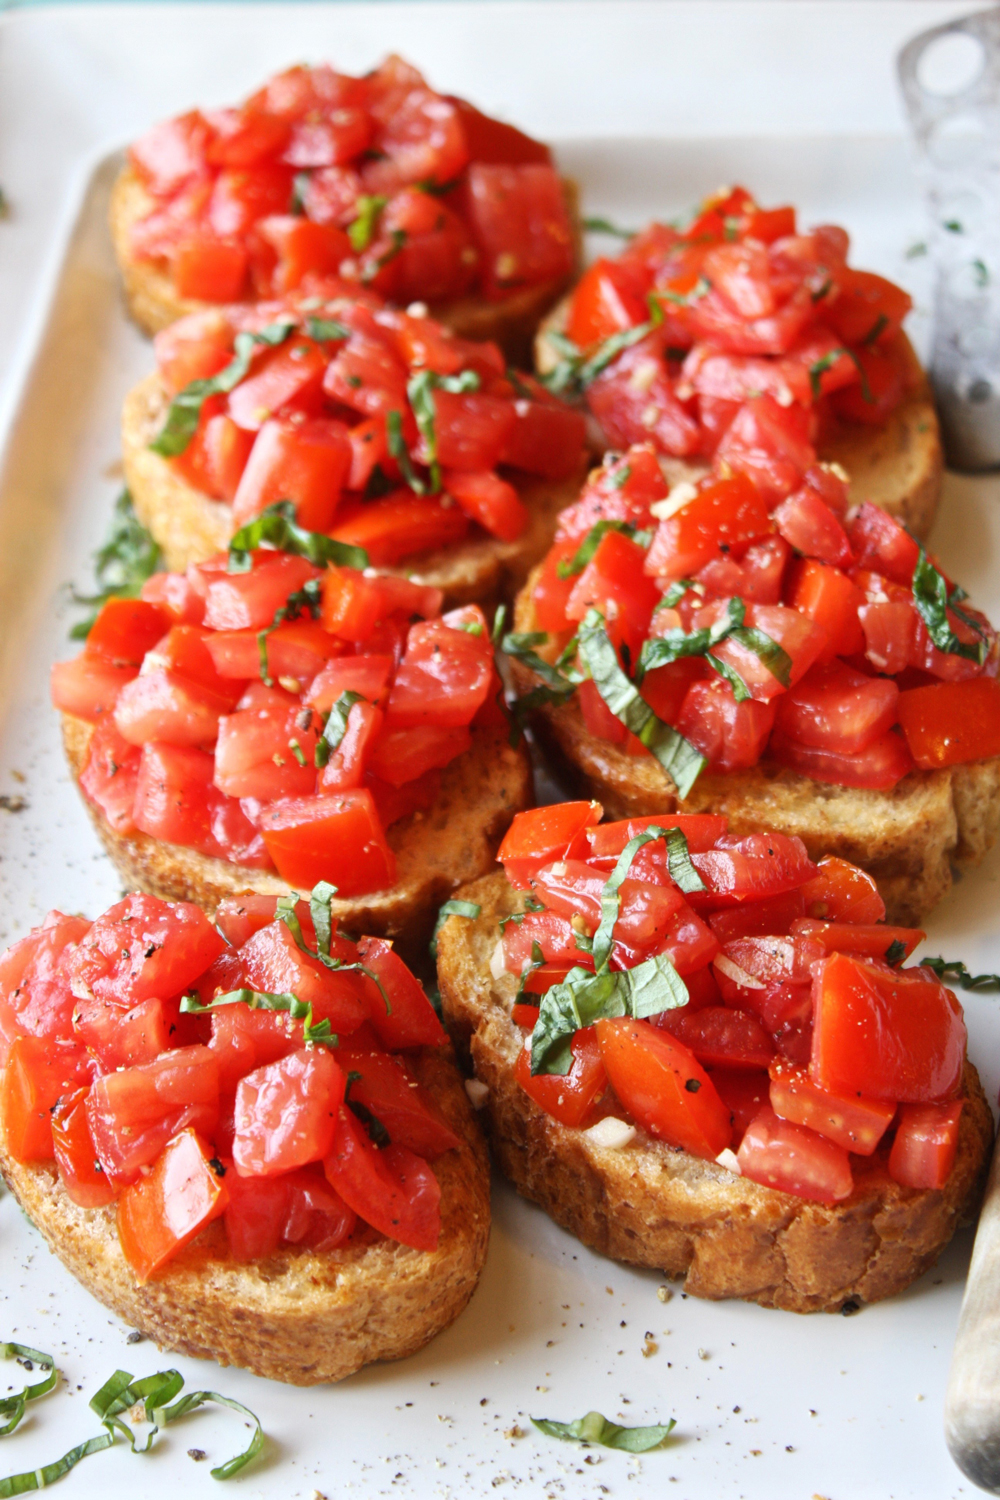 COLDHORS D'OEUVRES -